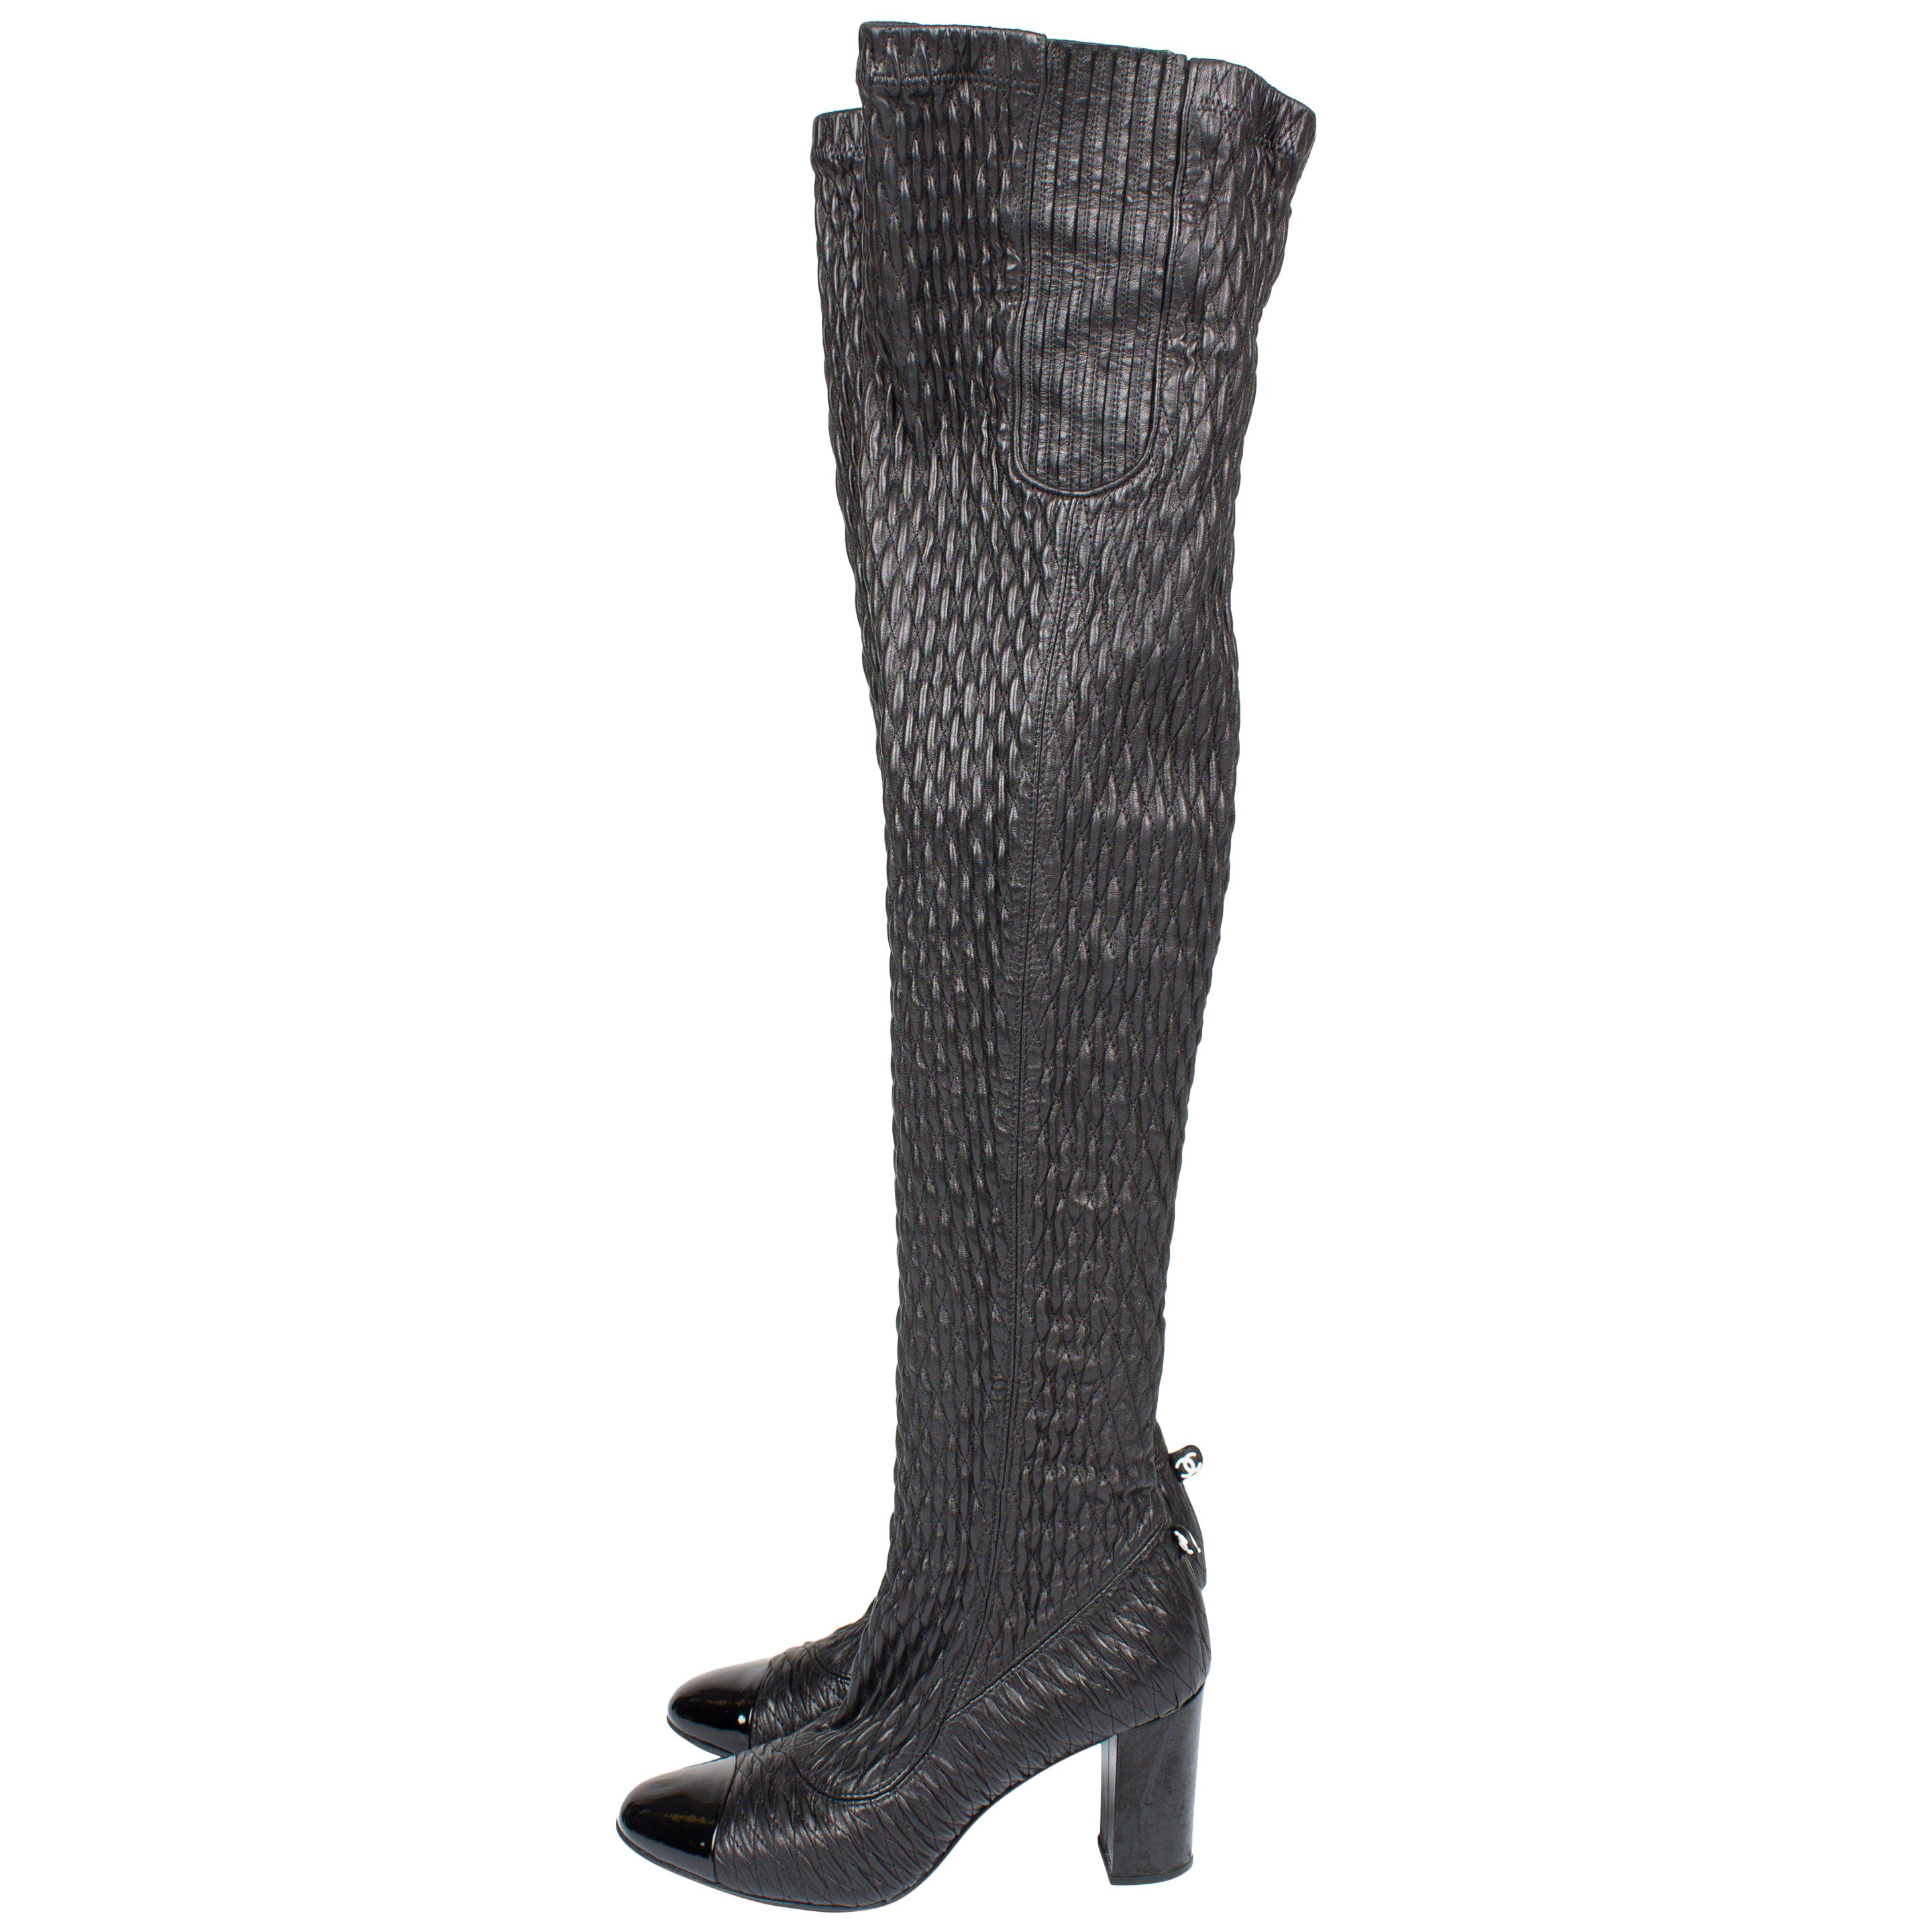 4300953e8bb Chanel Thigh High Lace-up Boots - black For Sale at 1stdibs